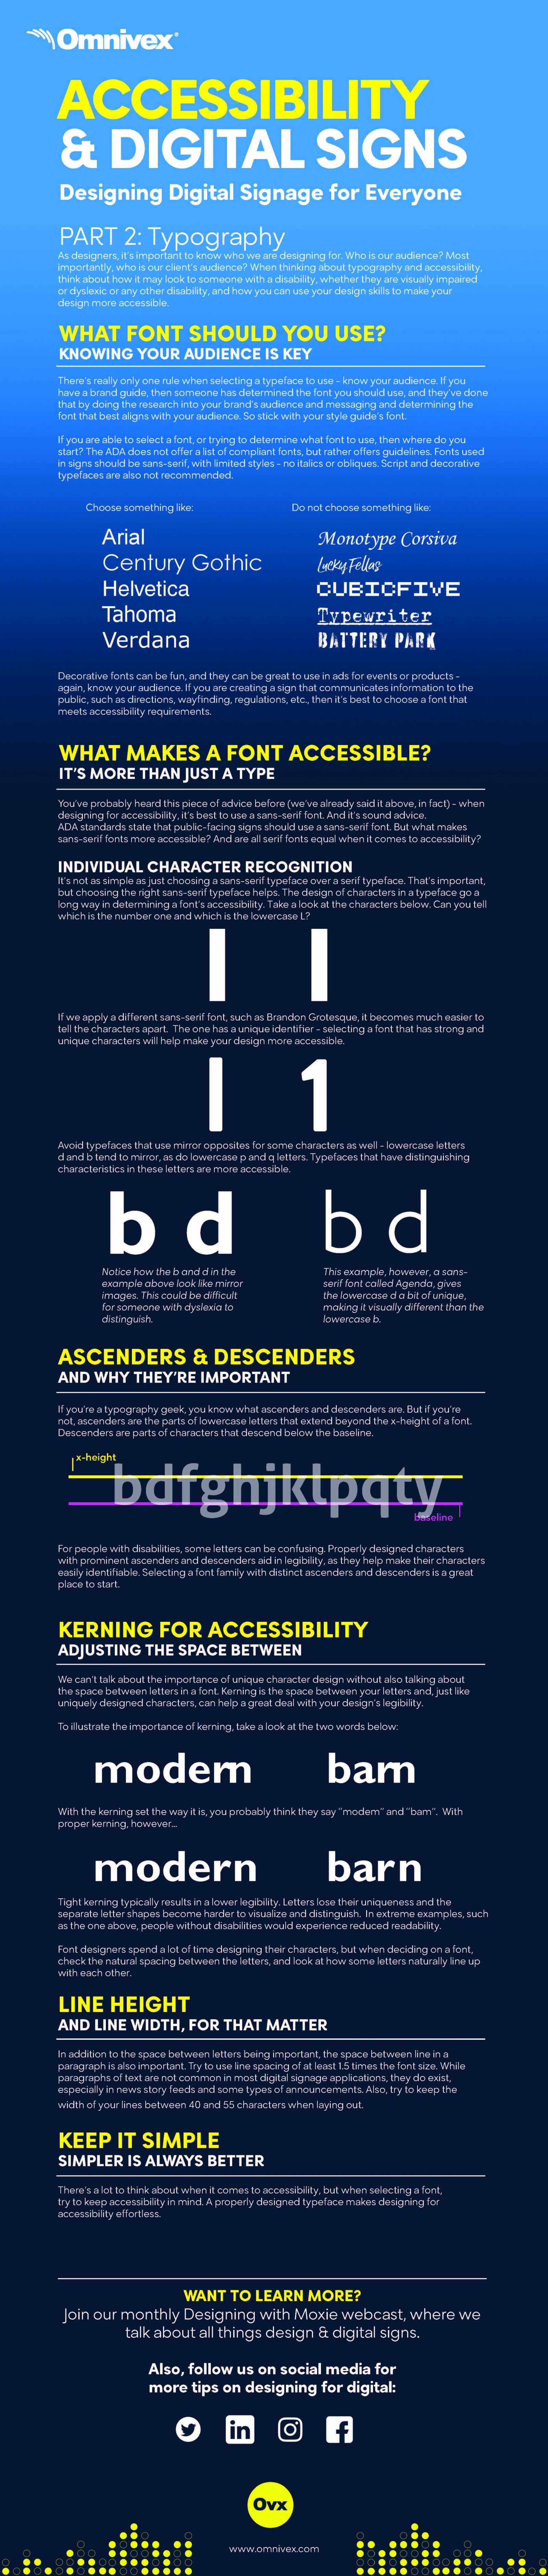 accessibility in design - typography infographic